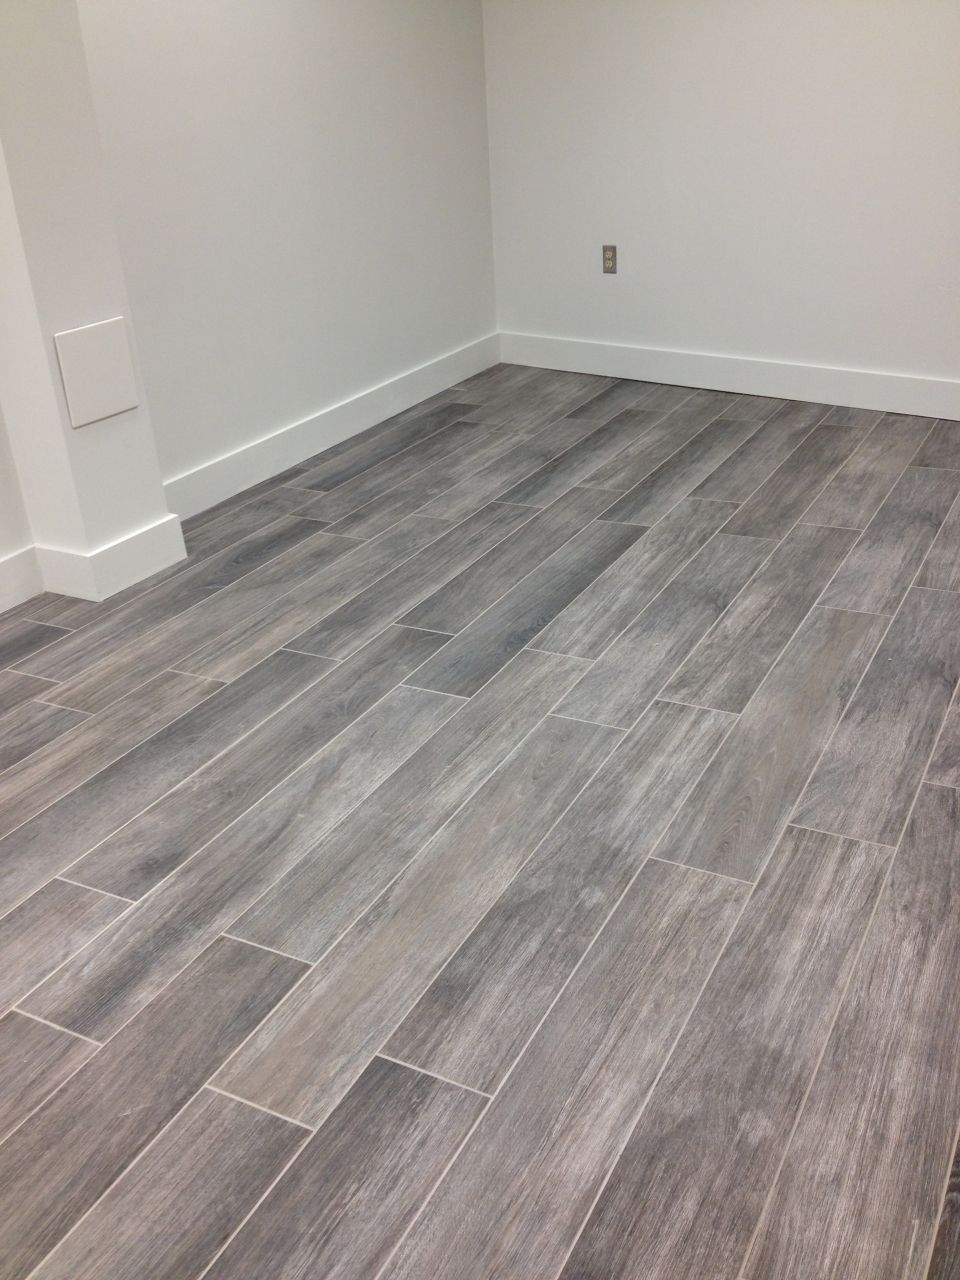 Gray wood tile floor no3lcd6n8 homes pinterest wood for Homes with hardwood floors